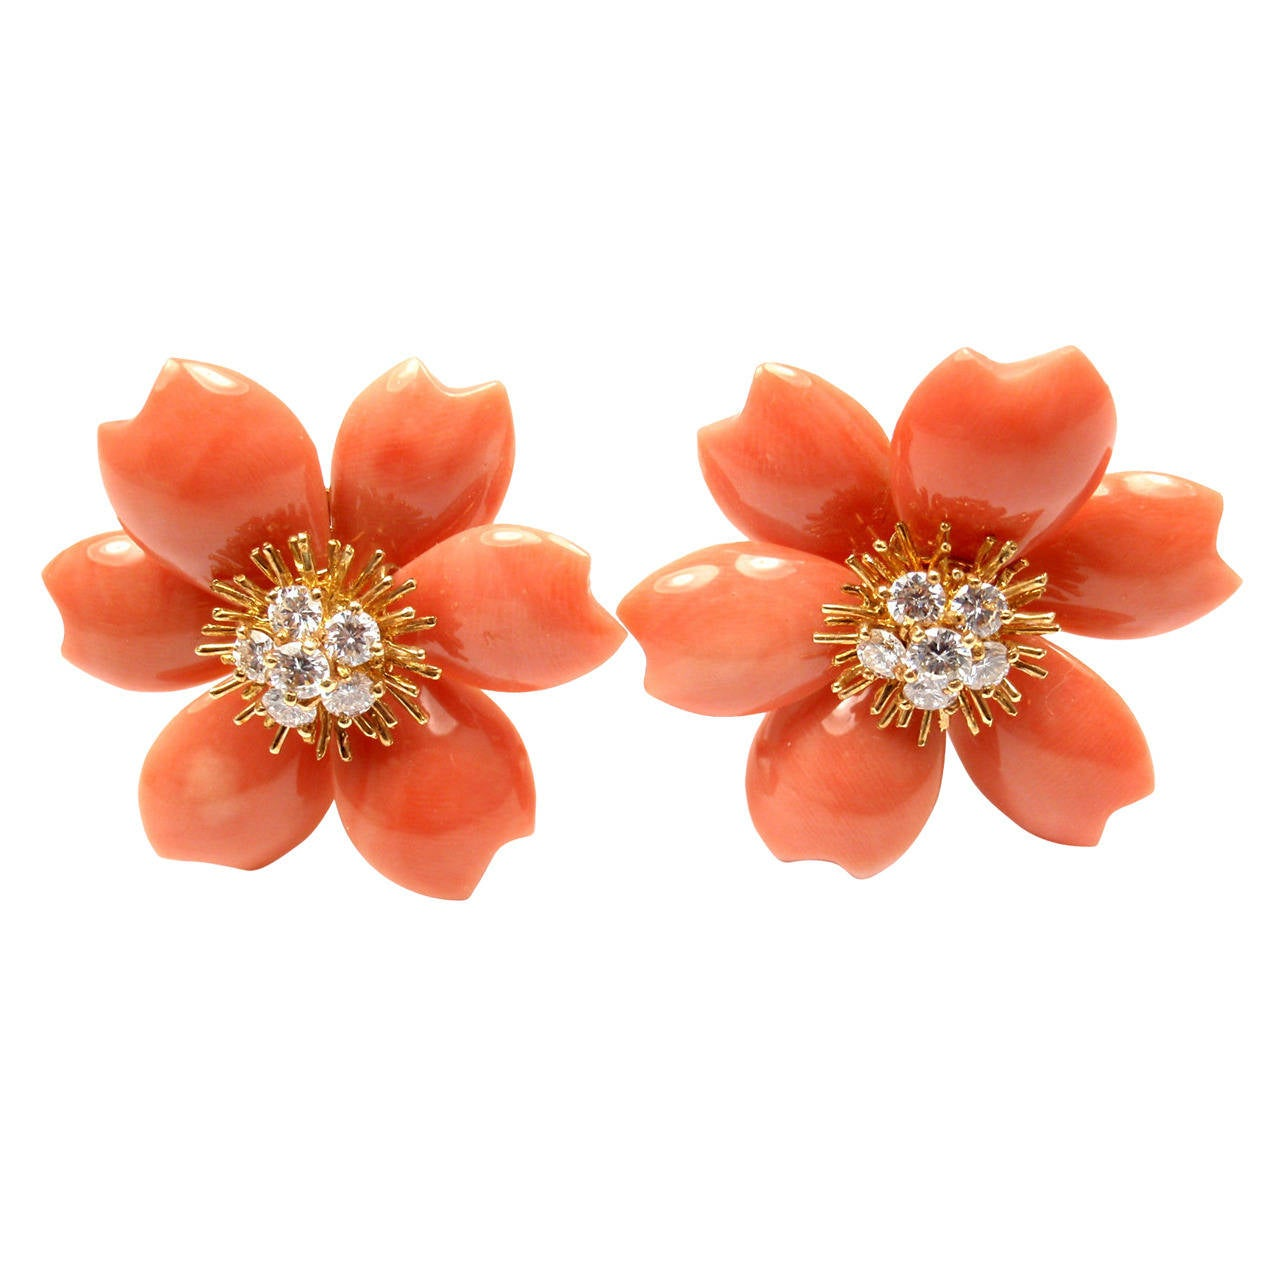 Van Cleef & Arpels Rose De Noel Coral Diamond Gold Earrings 1